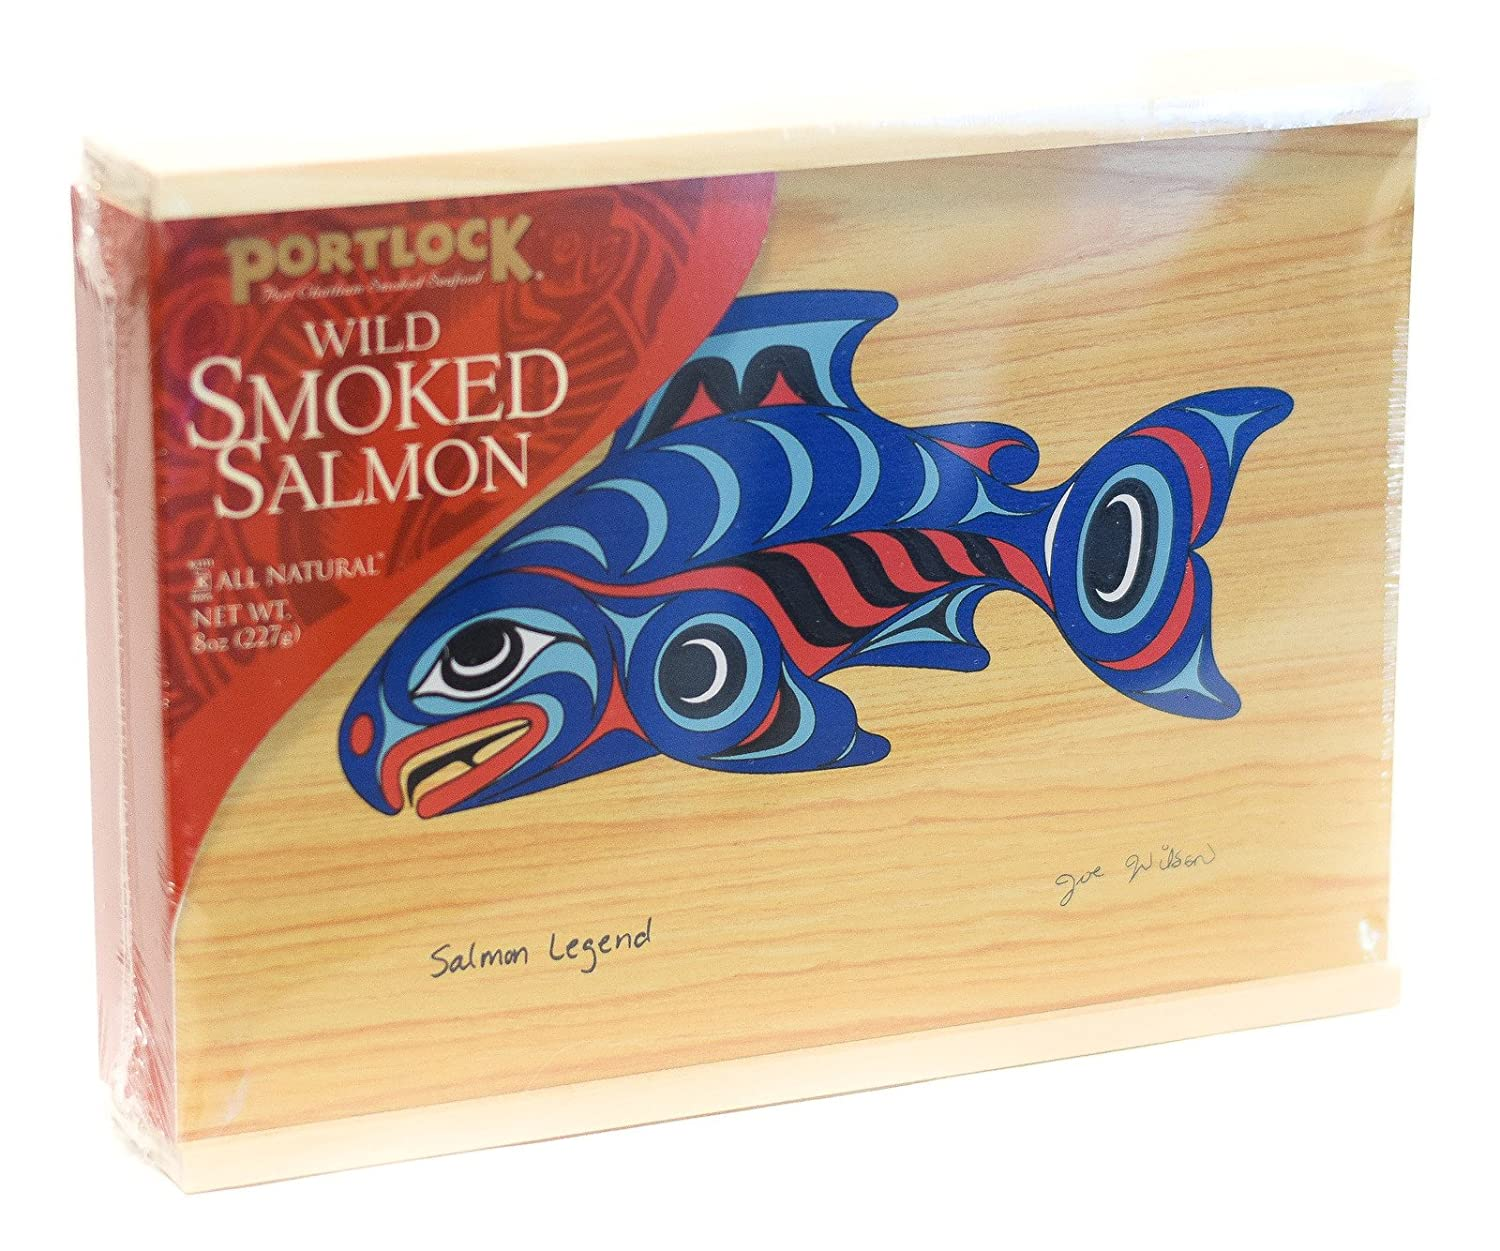 Portlock Wild Smoked Salmon In Pacific Northwest Wood Gift